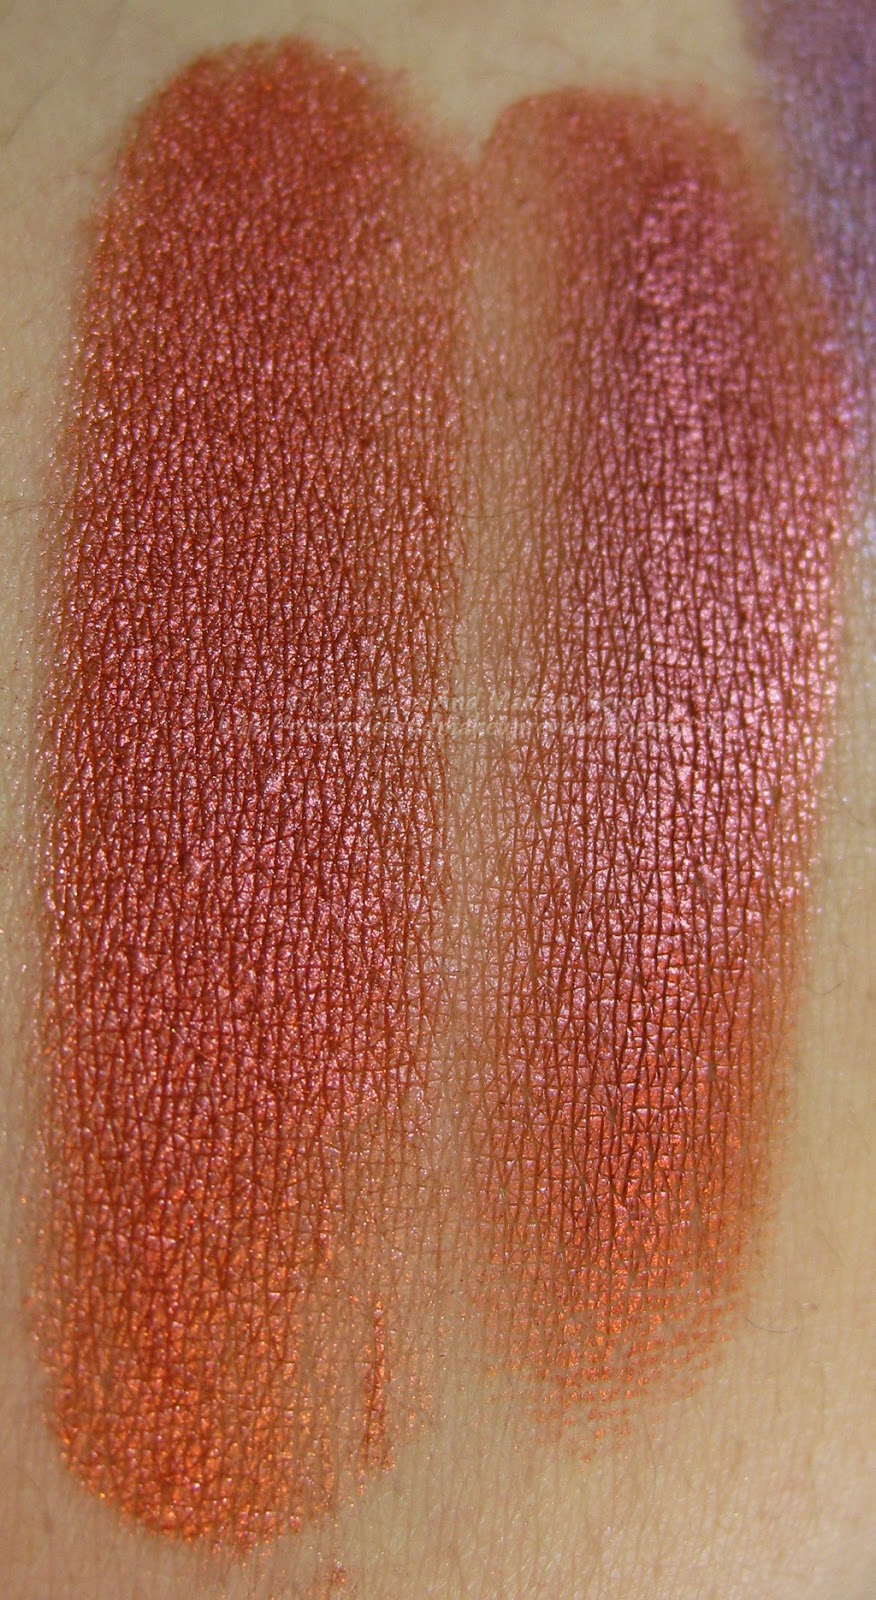 Neve Cosmetics - Pop Society Collection - Compilation swatches asciutto (sx) e bagnato (dx)